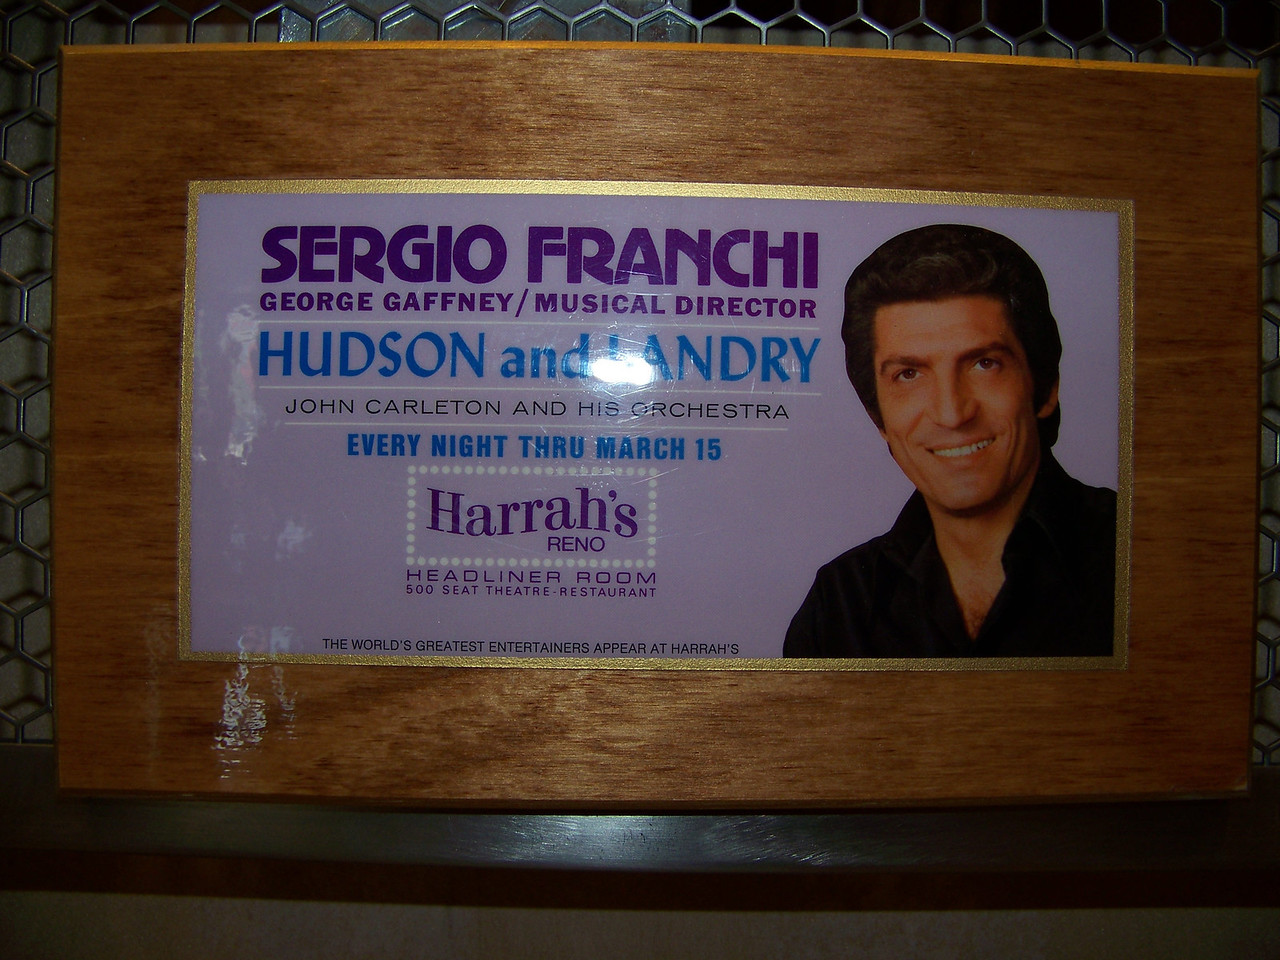 This shot is especailly for Dave's aunt Ruby.  She's a big fan of Sergio Franchi, and actually saw him perform at Harrah's back in the 1970s.<br /> [Reno]